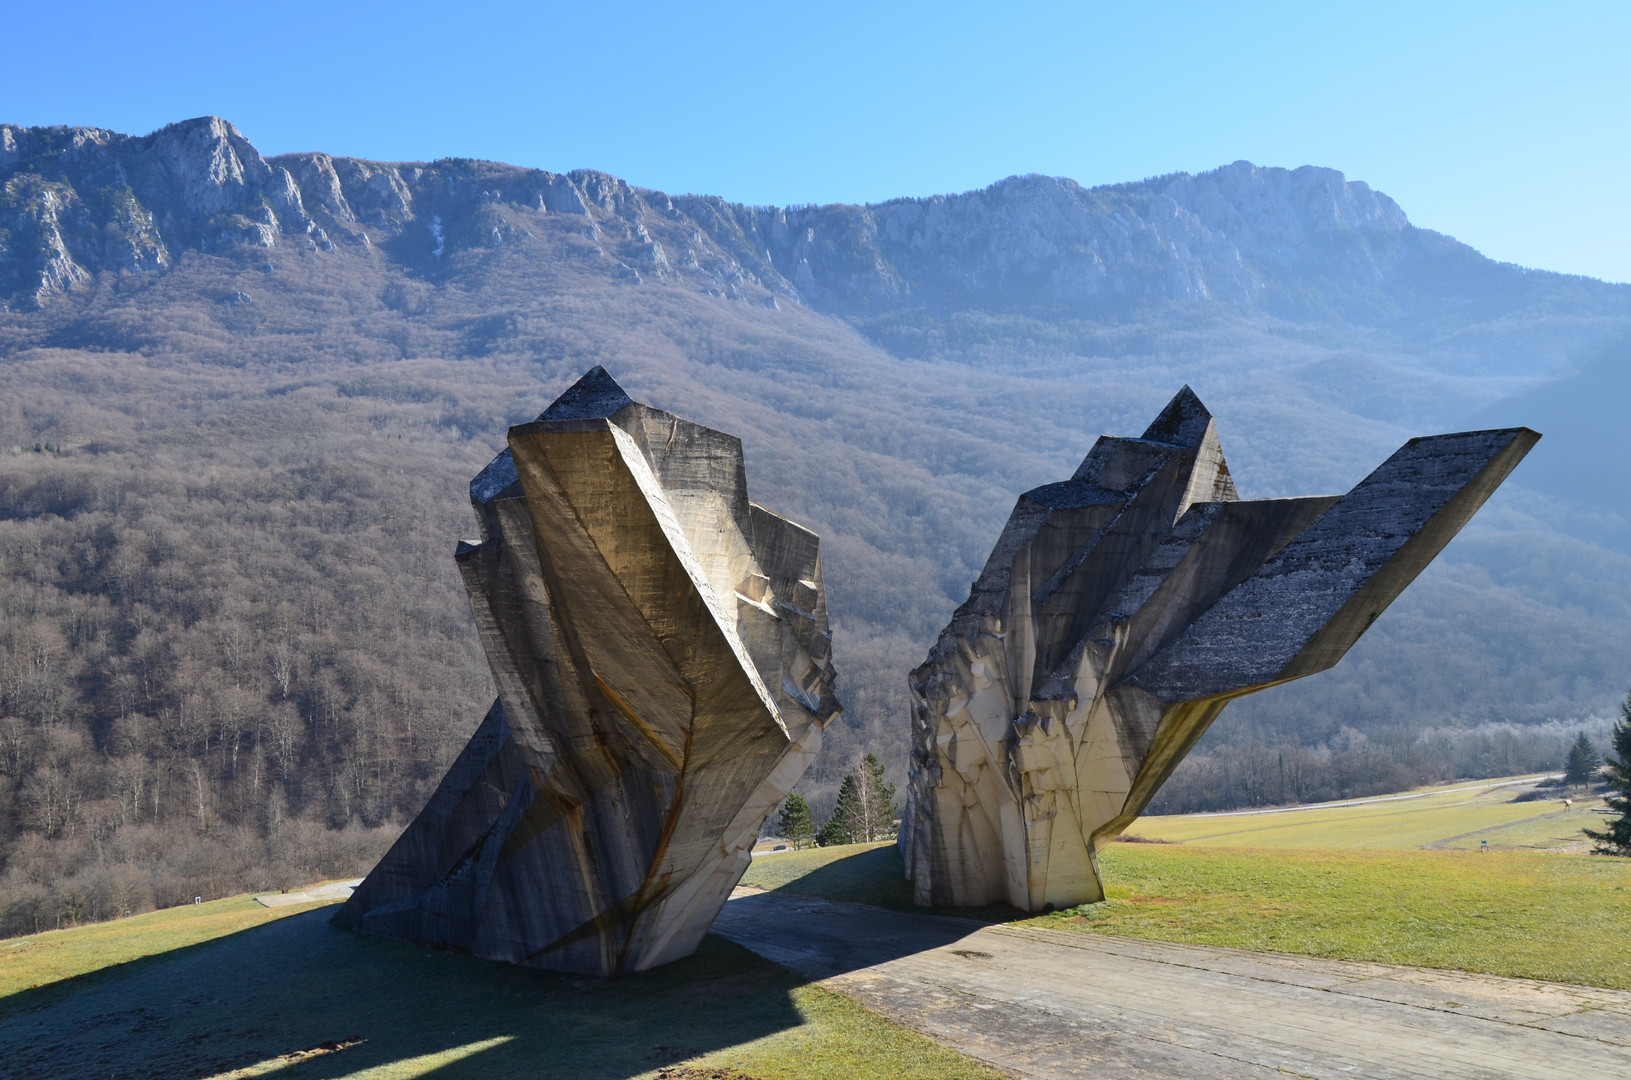 Miodrag Živković, Monument to the Battle of Sutjeska, 1964-1971. Valley of Heroes, Tjentište, Bosnia and Herzegovina.